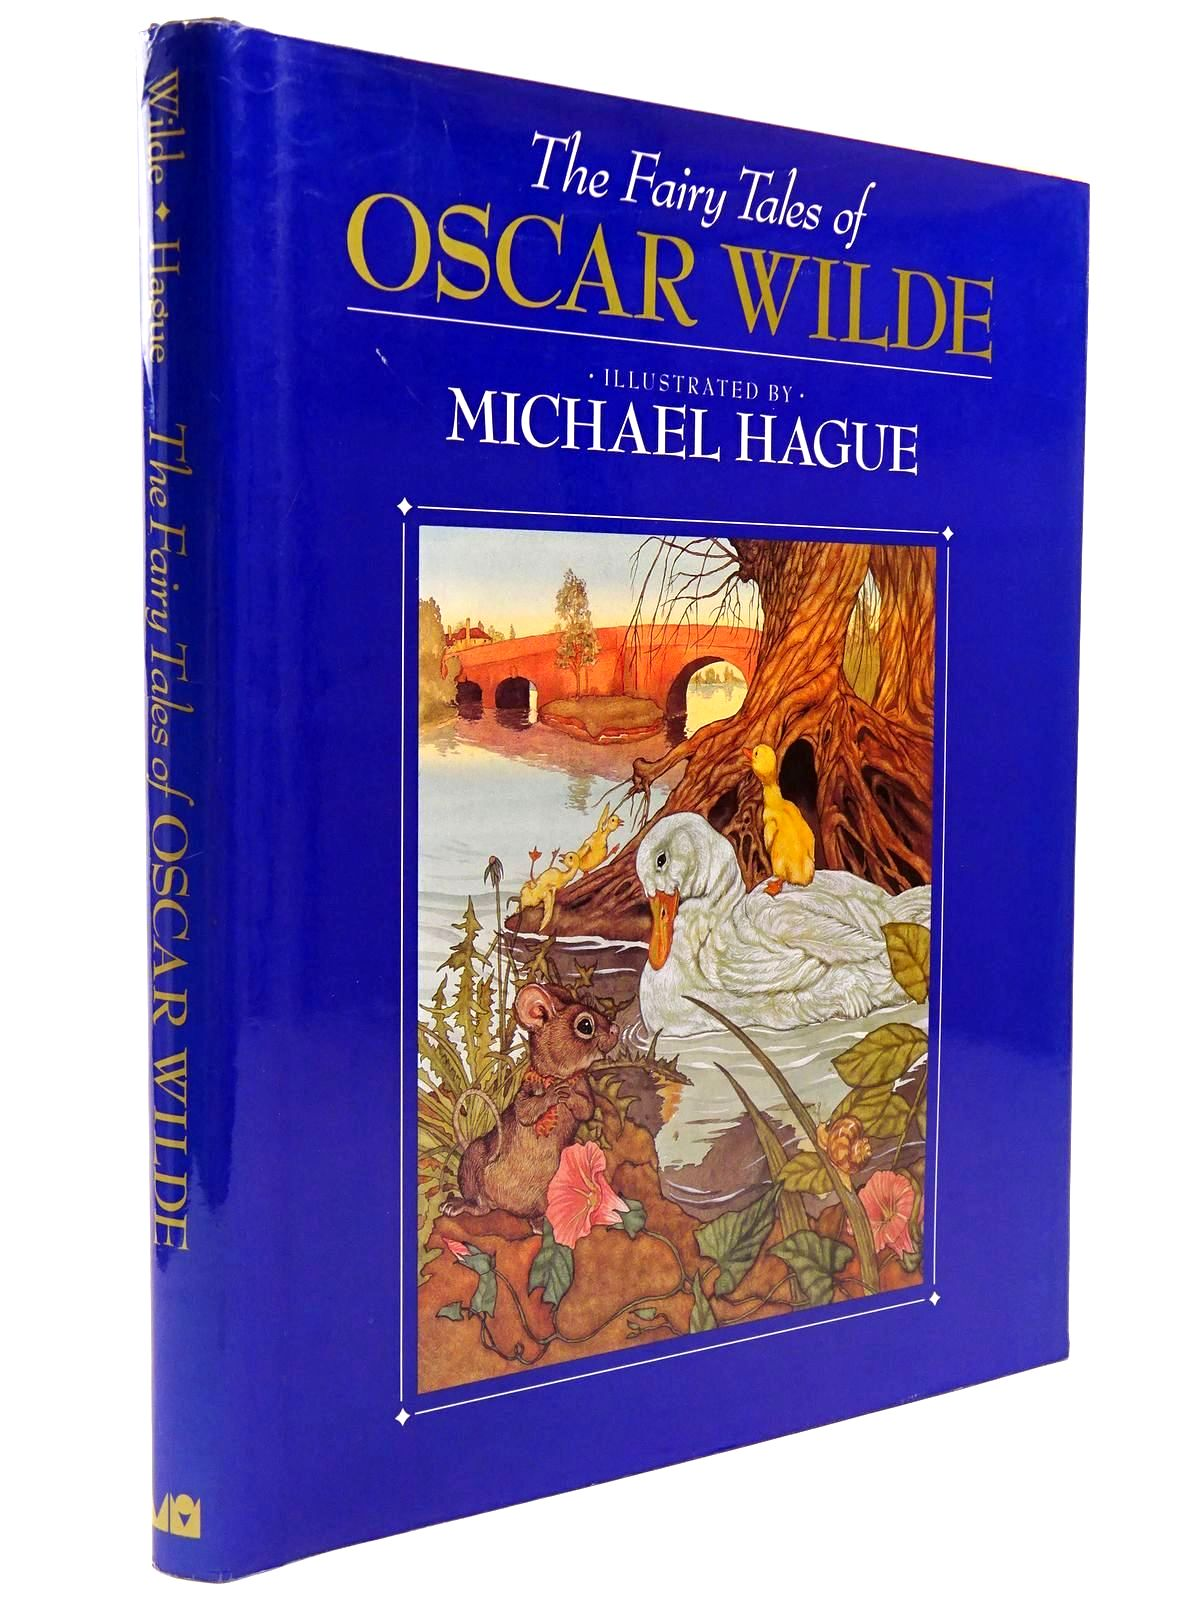 Photo of THE FAIRY TALES OF OSCAR WILDE written by Wilde, Oscar illustrated by Hague, Michael published by Michael O'Mara Books Limited (STOCK CODE: 2130626)  for sale by Stella & Rose's Books